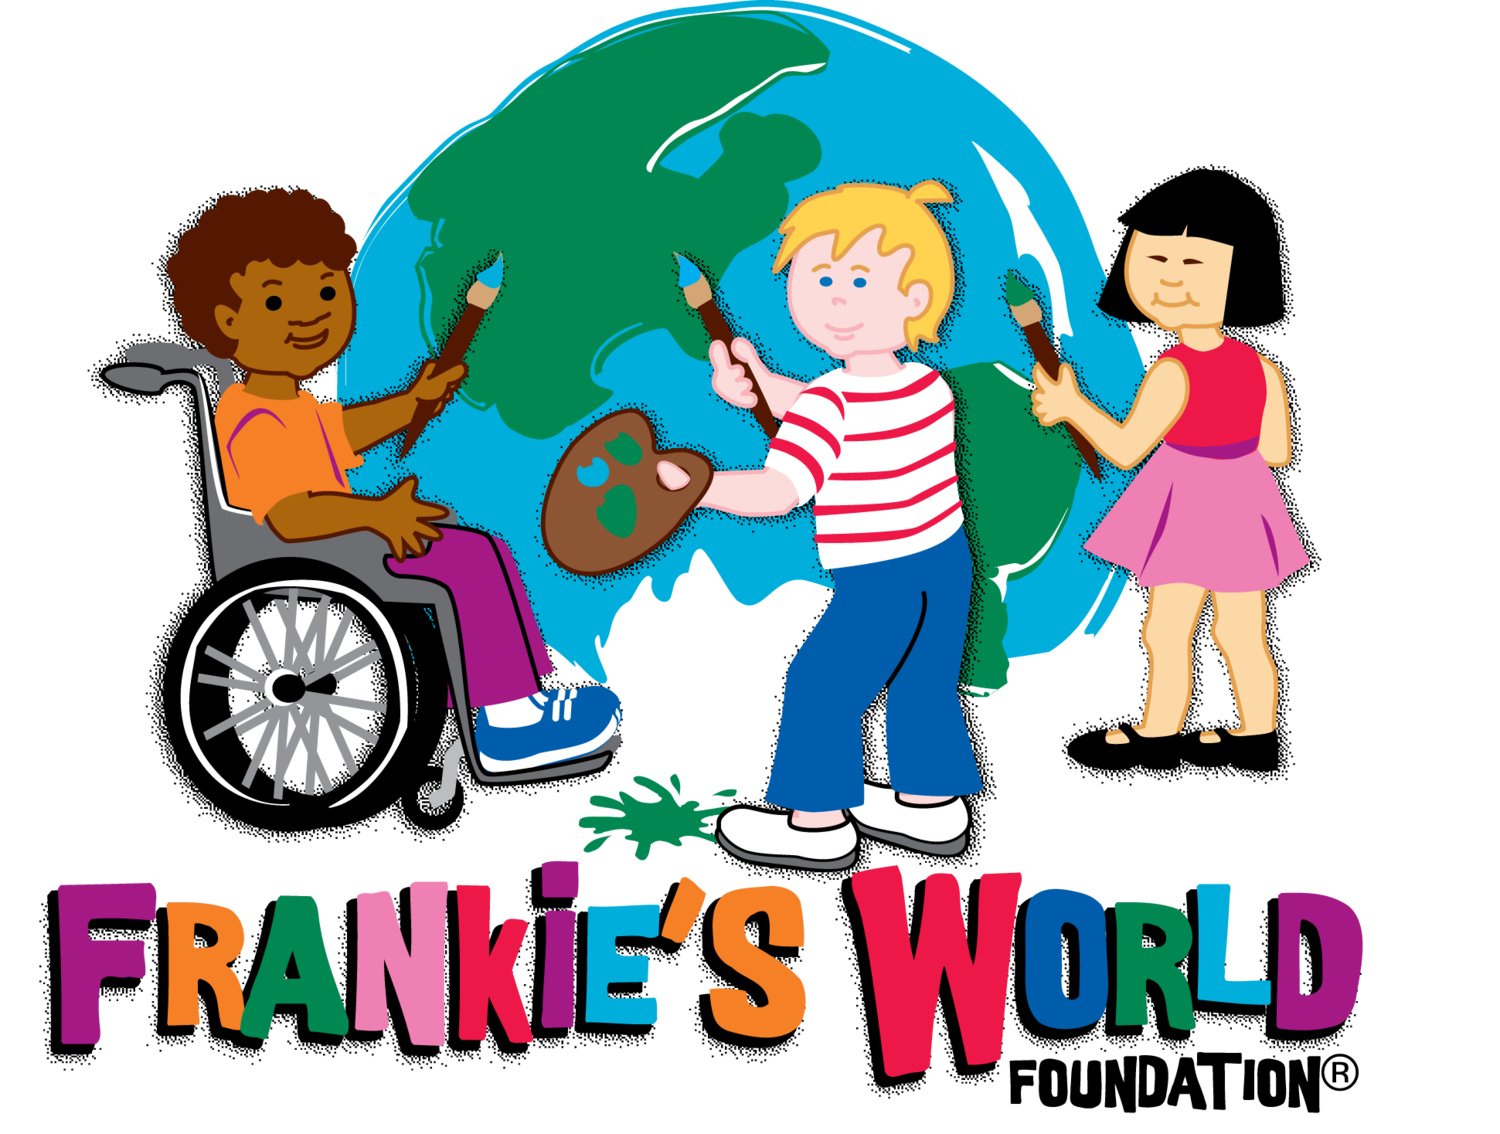 Frankie's World is Philadelphia's Leading Medical Day Care Provider